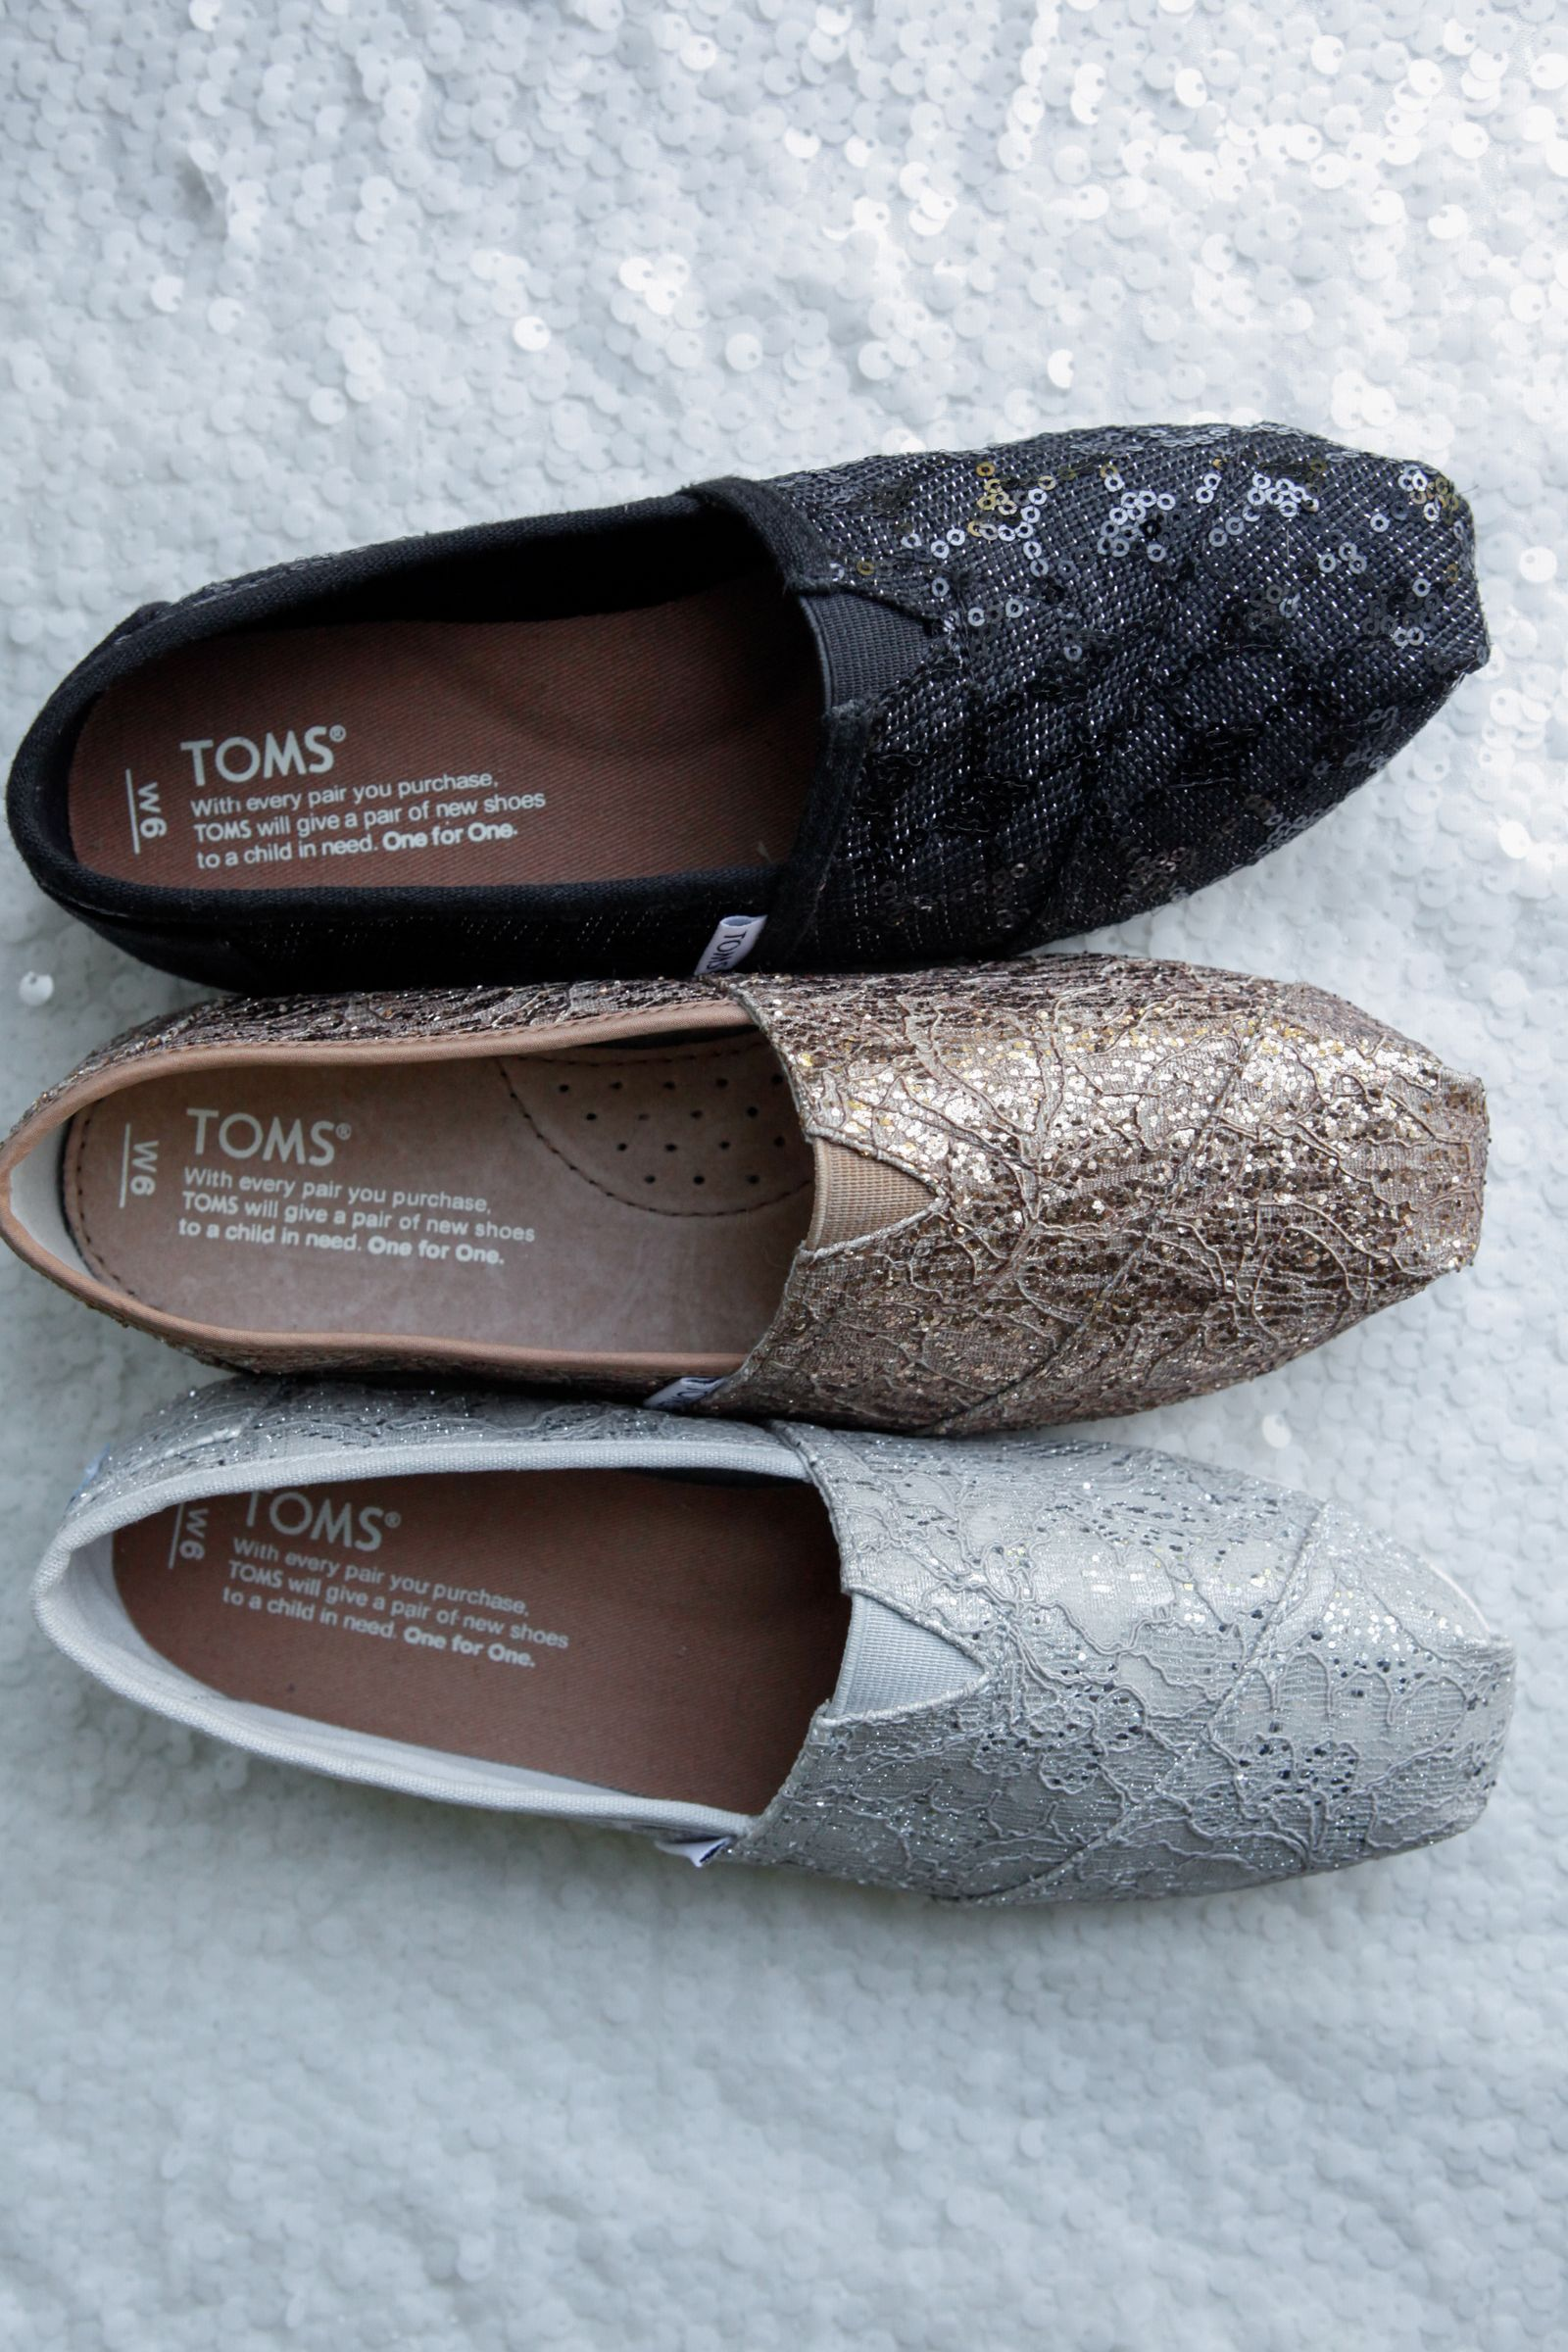 4a61666a8ec1 Sparkle all day (or night) in these vegan TOMS Classics. Each pair of shoes  features a gold, black, or silver glitzy lace pattern.